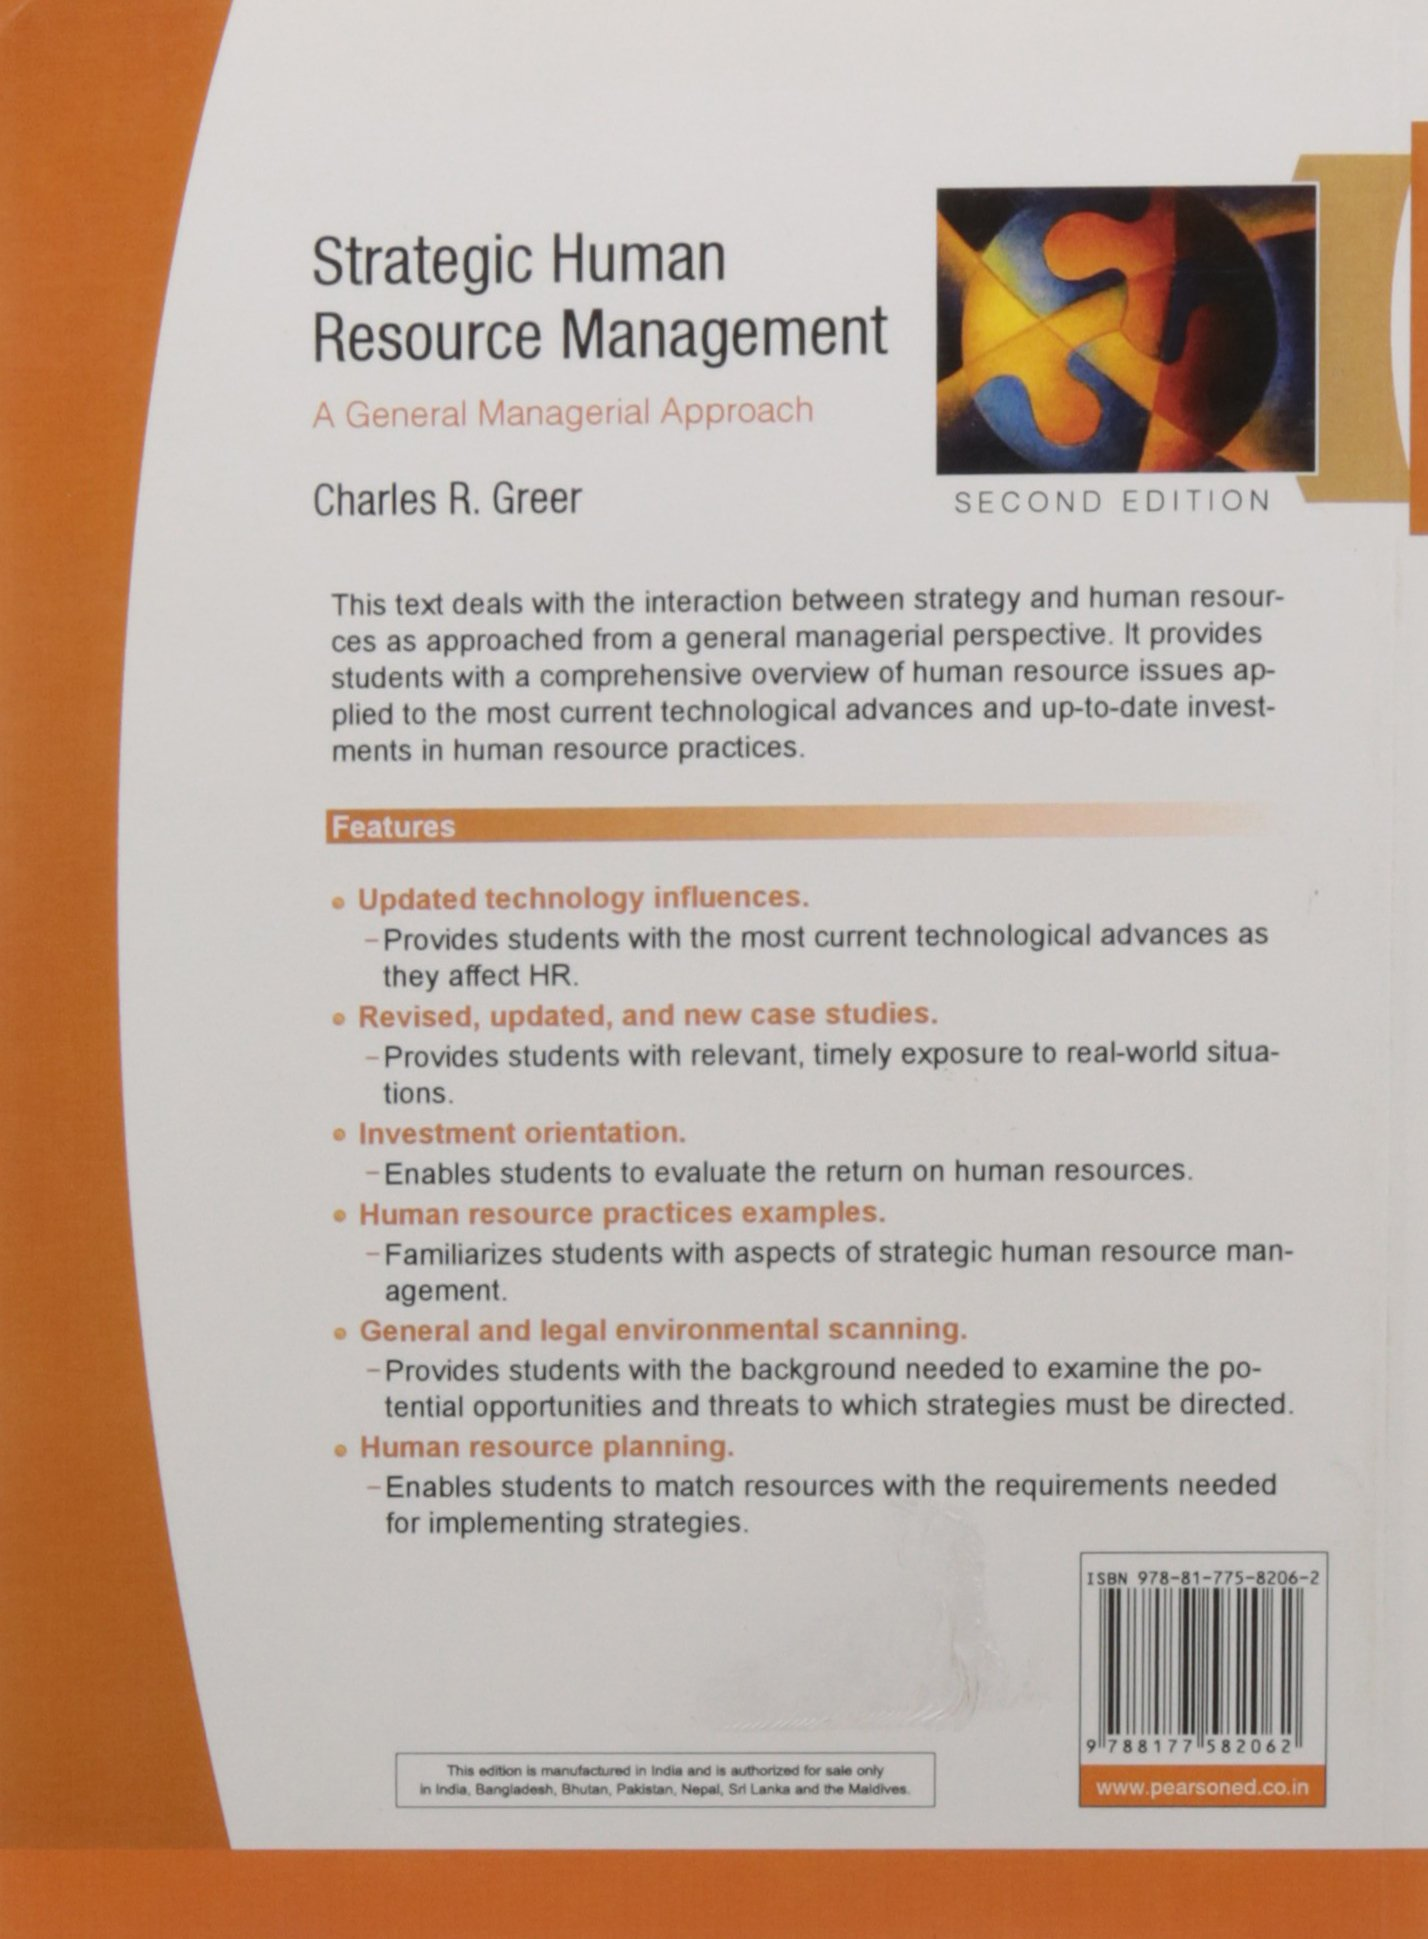 features of strategic human resource management